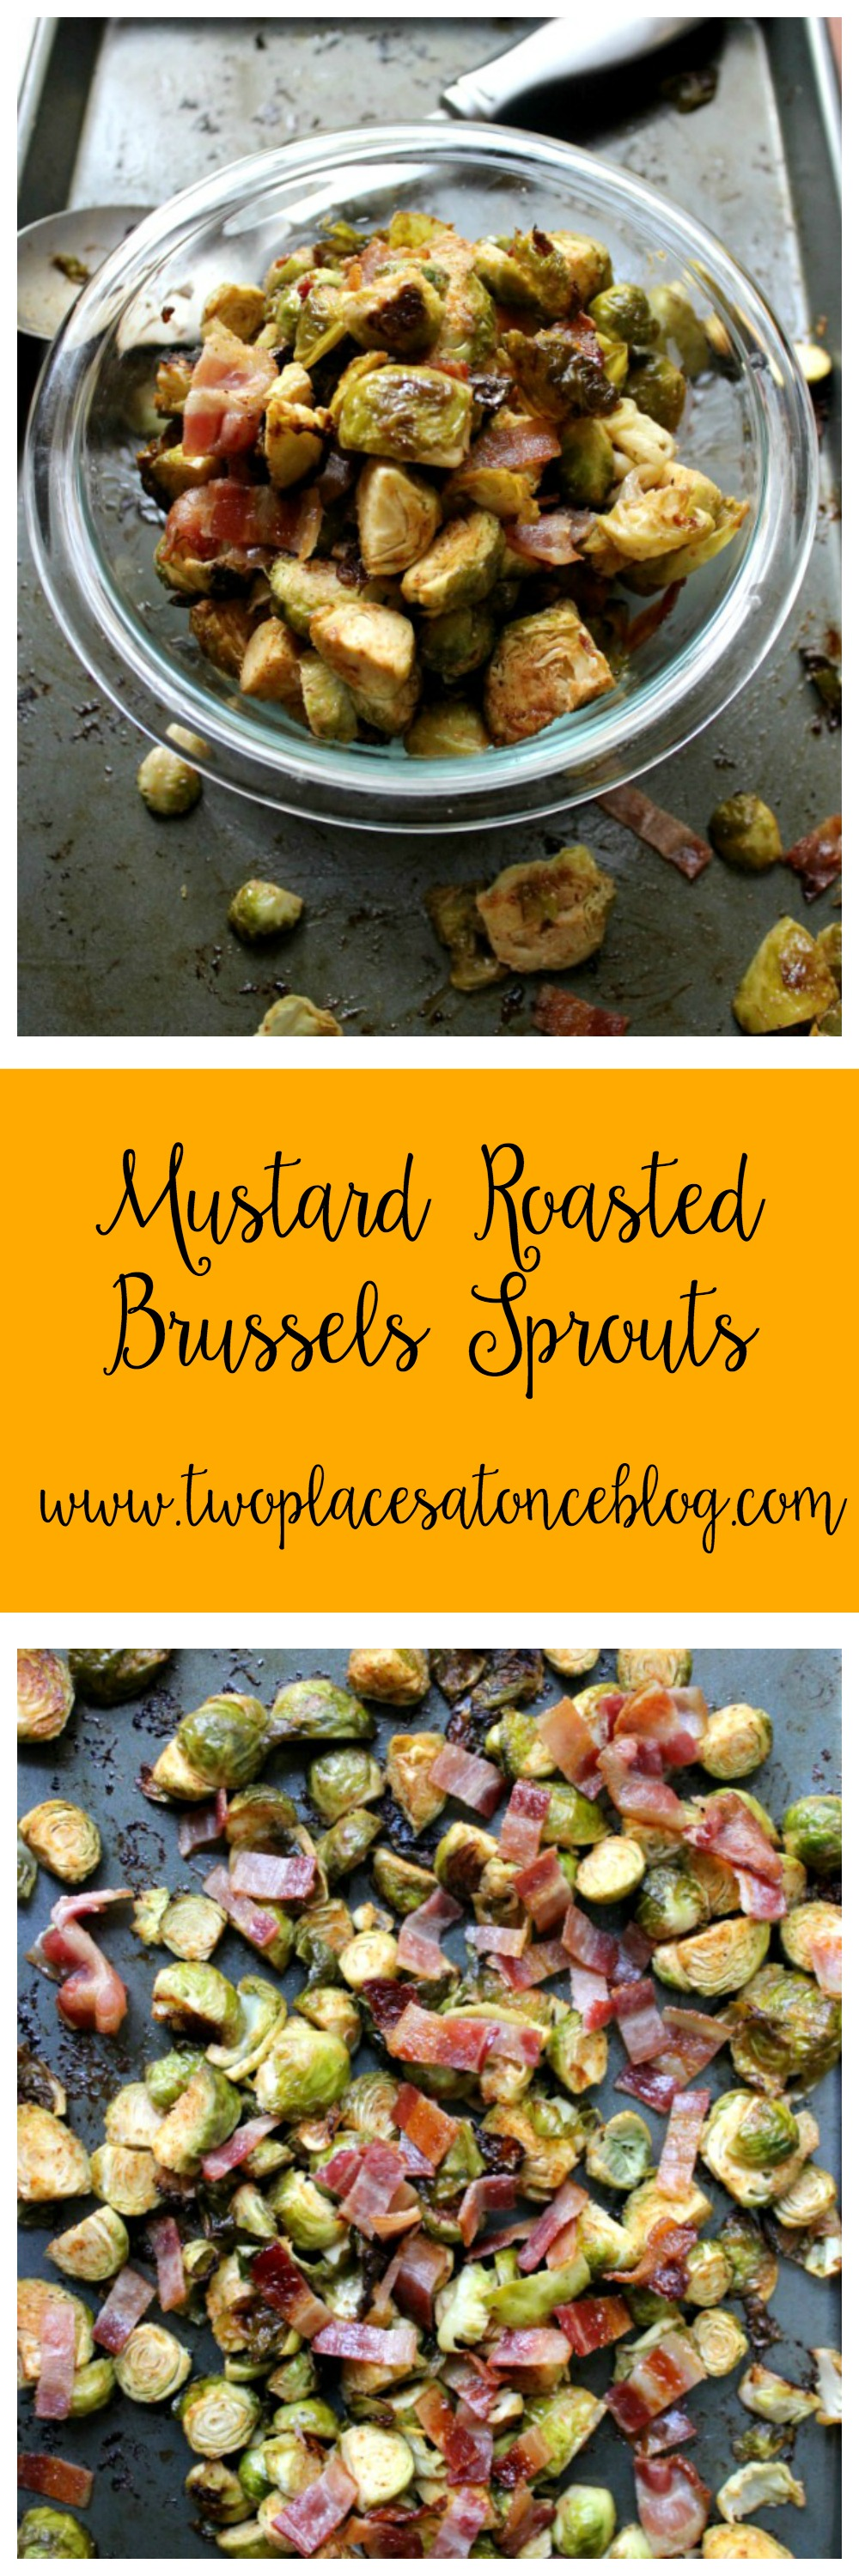 mustard-roasted-brussels-sprouts-pinterest